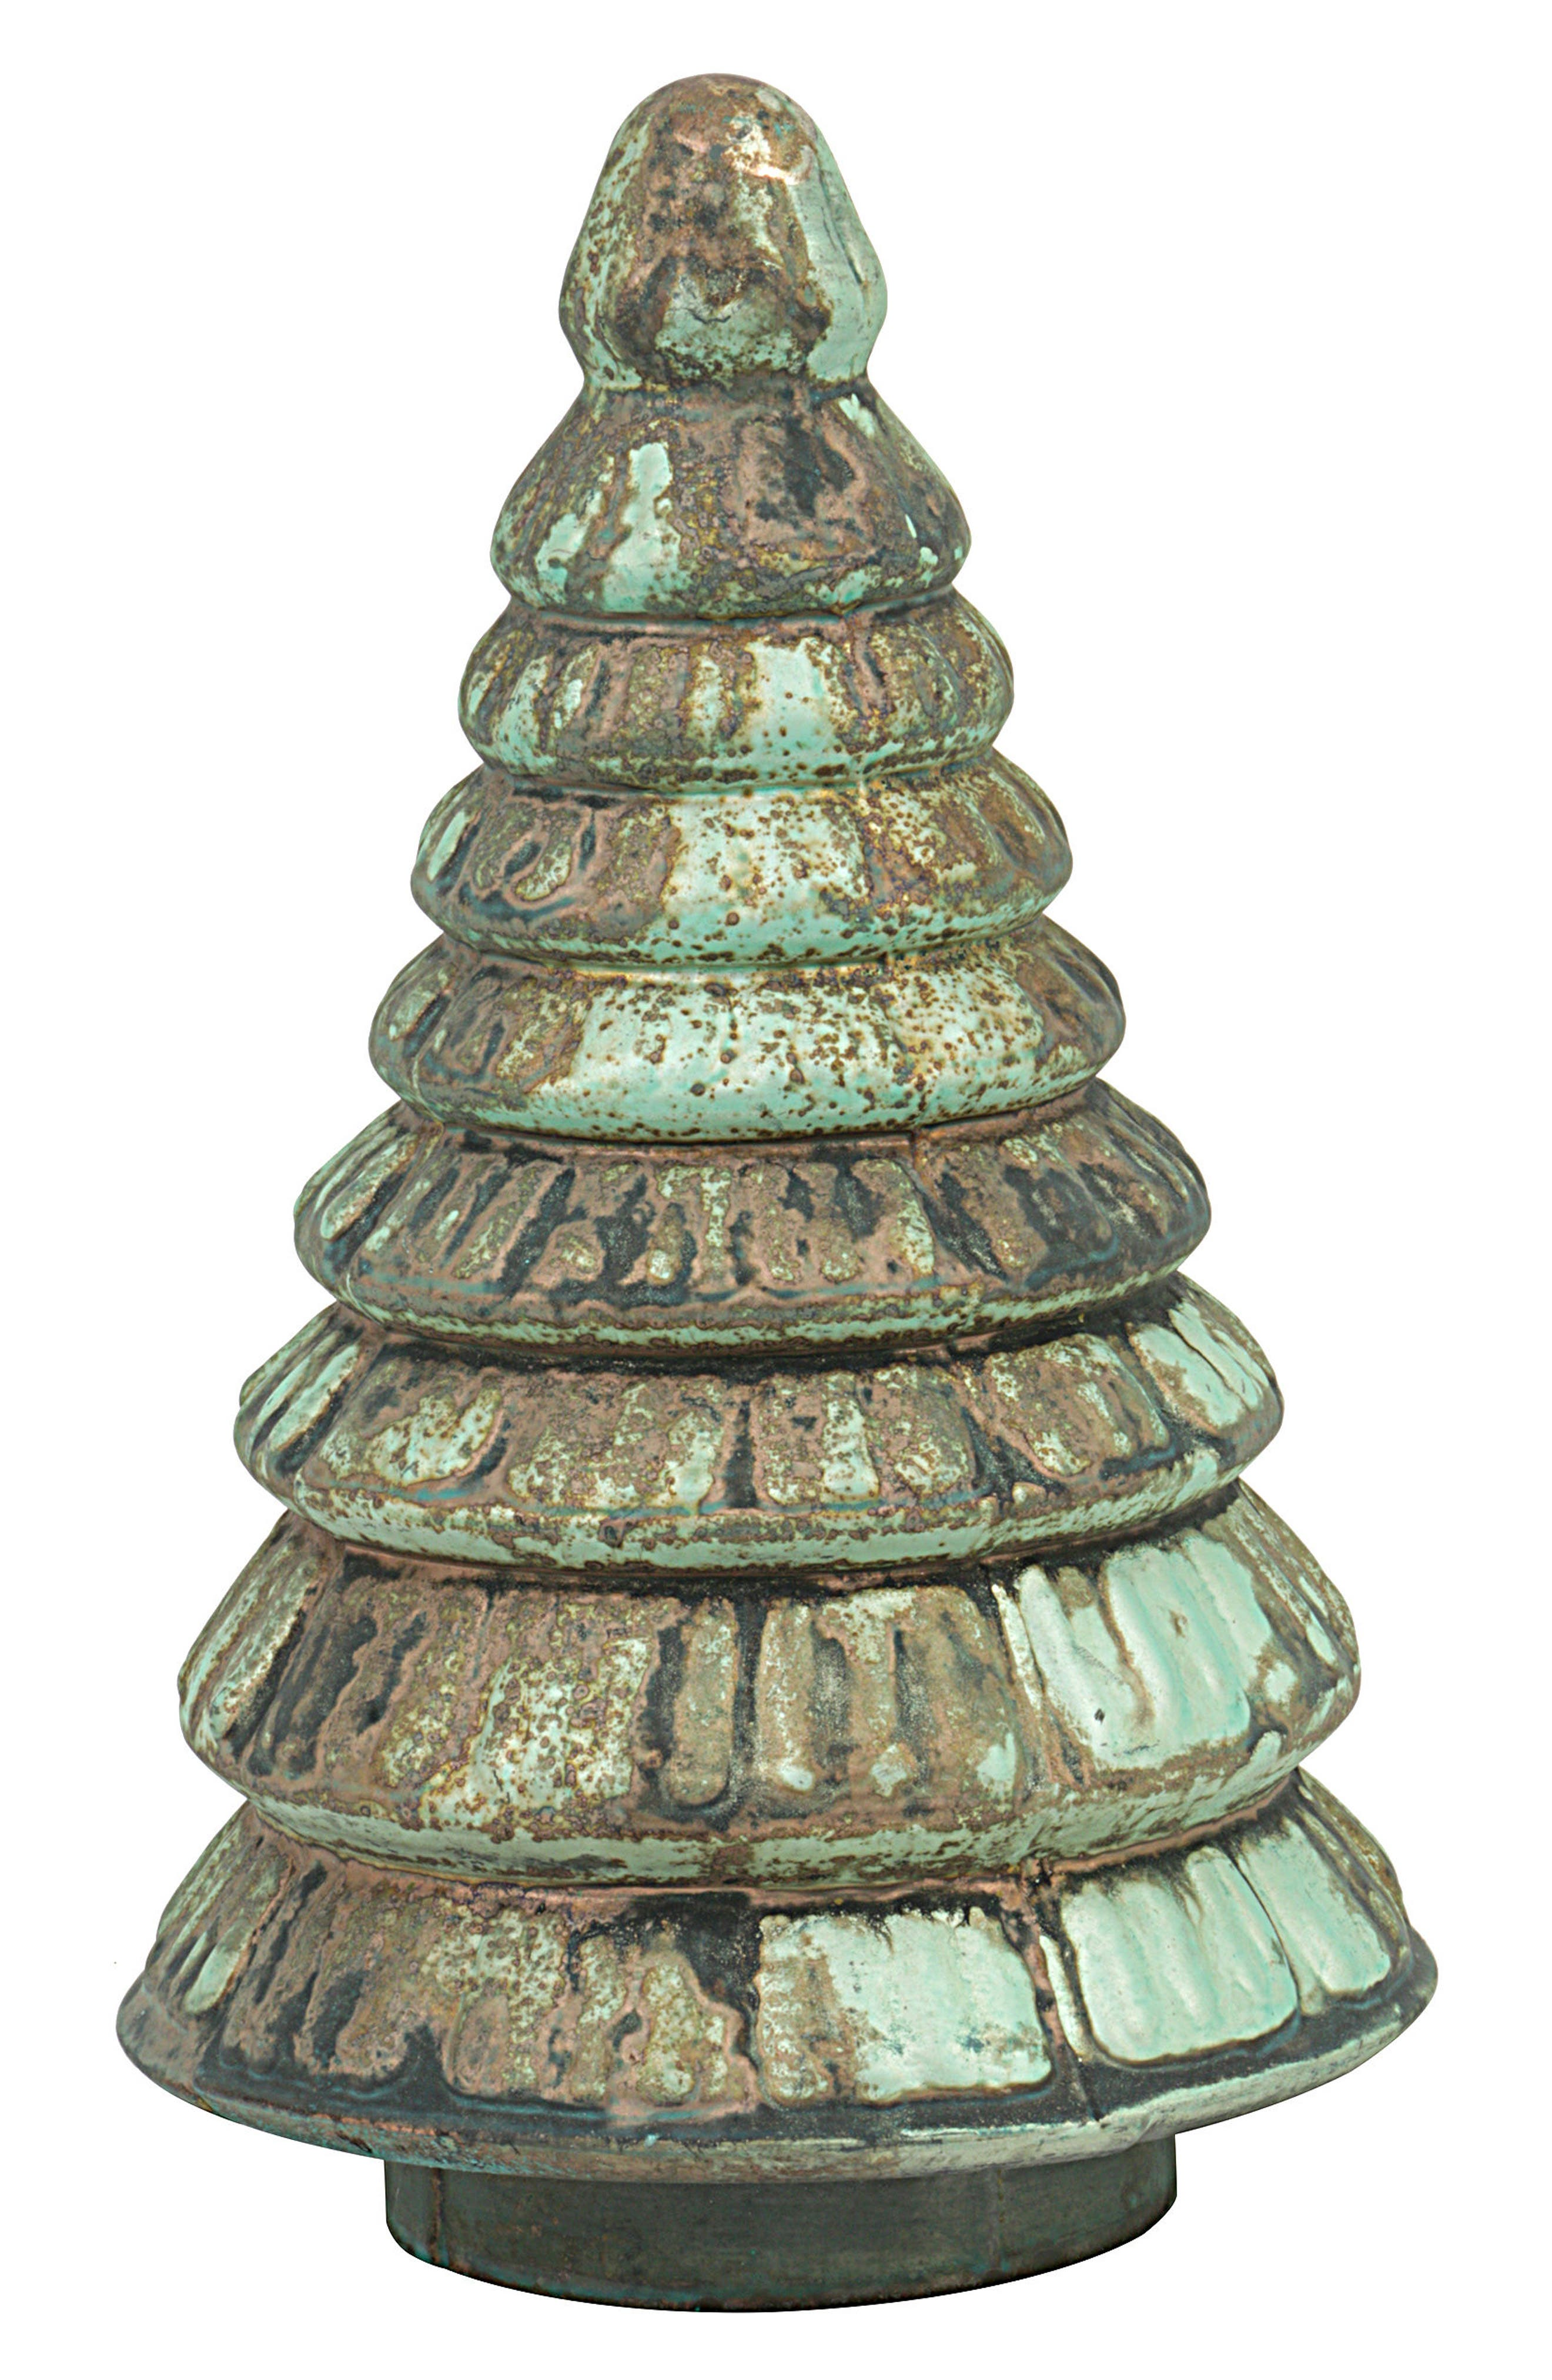 Alternate Image 1 Selected - Creative Co-Op Distressed Mercury Glass Tree